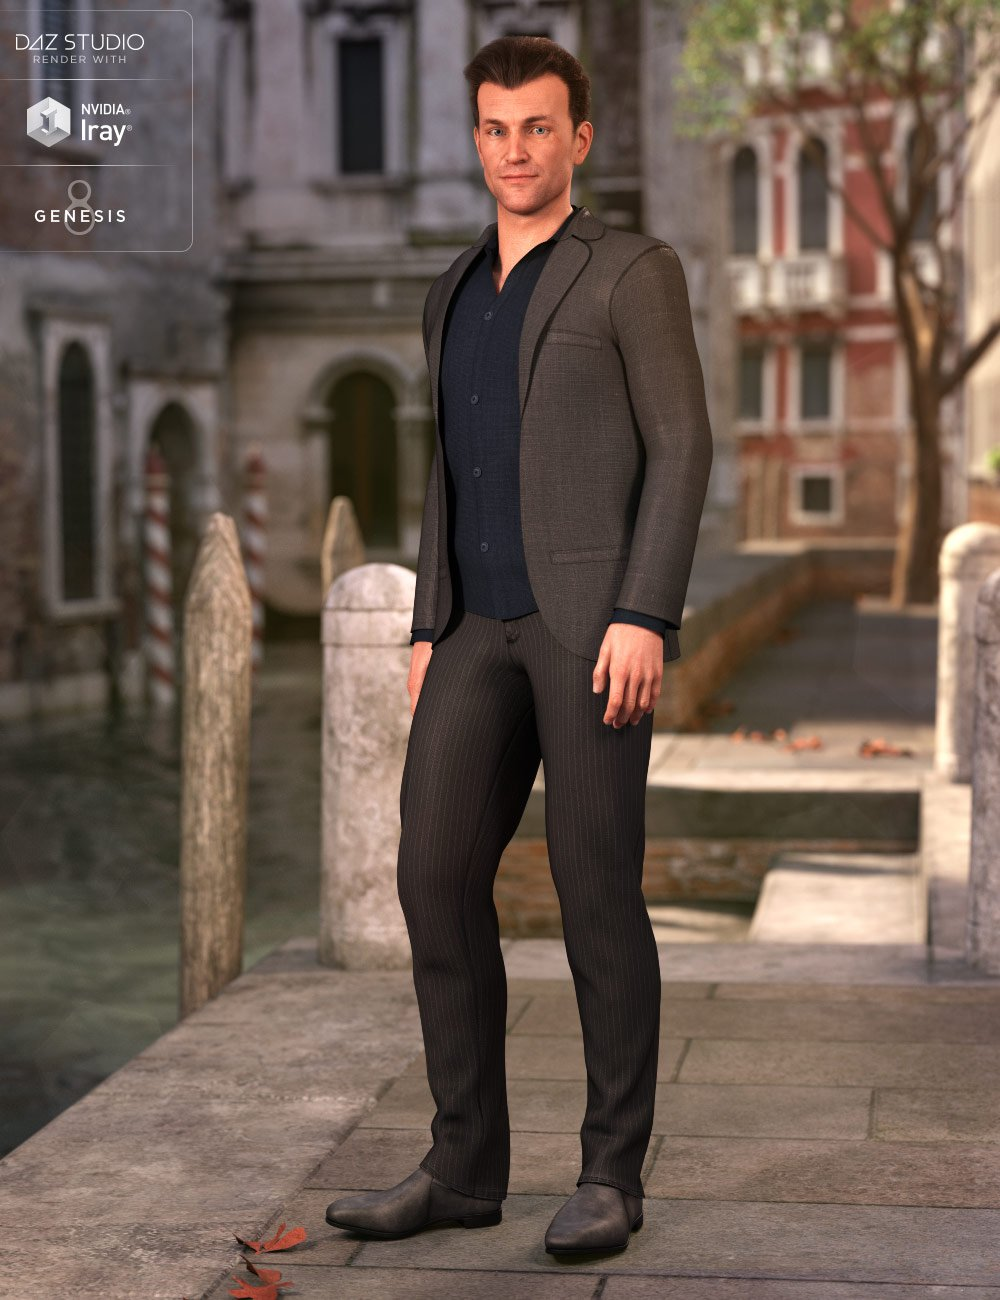 dForce Casual Suit Outfit for Genesis 8 Male(s) by: DirtyFairyNikisatez, 3D Models by Daz 3D